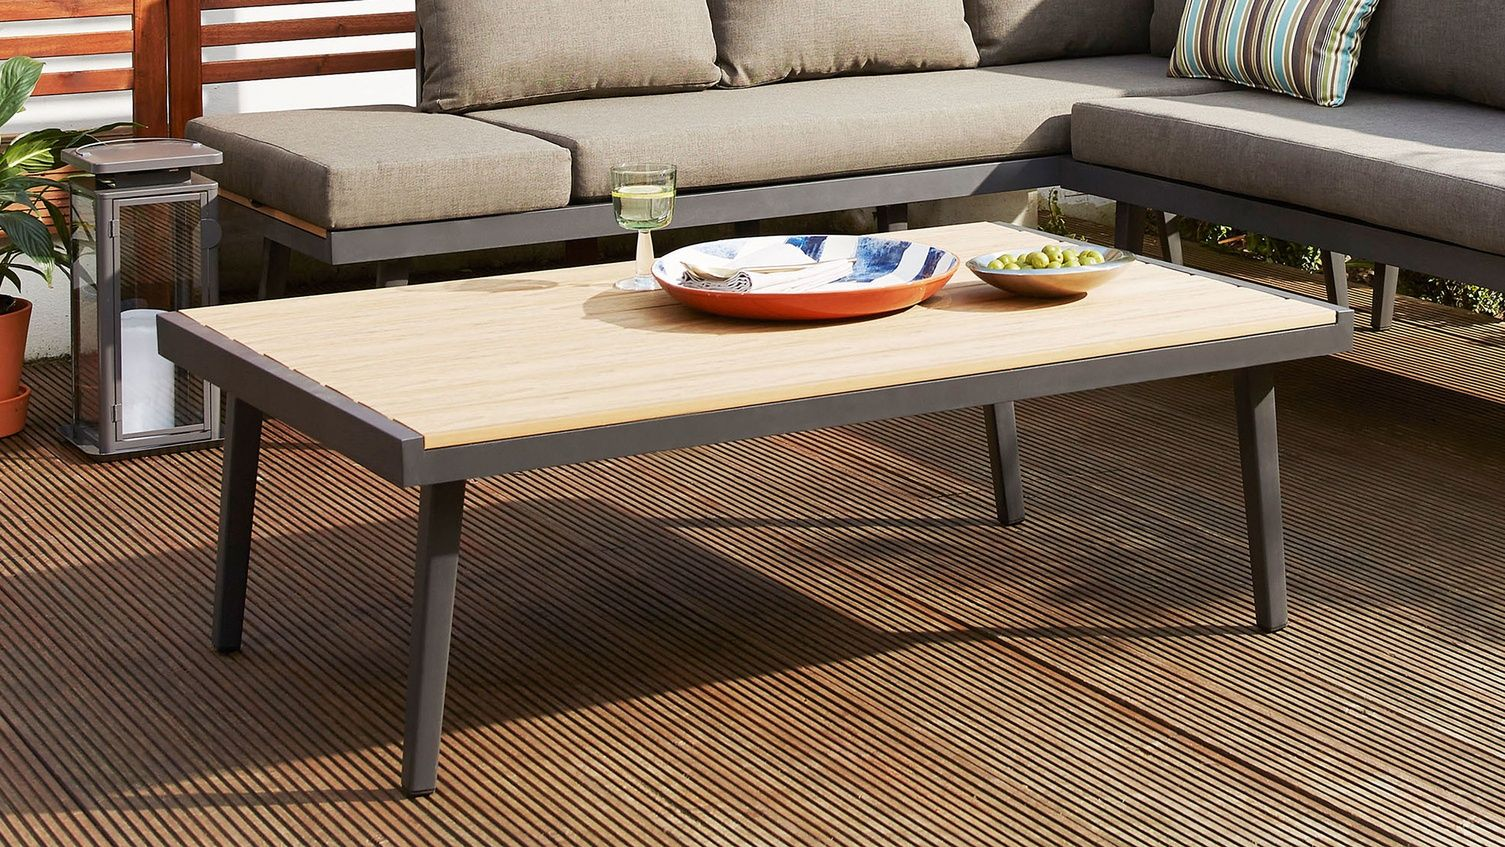 Palermo Grey Outdoor Coffee Table Coffee Table Contemporary Outdoor Coffee Tables Garden Coffee Table